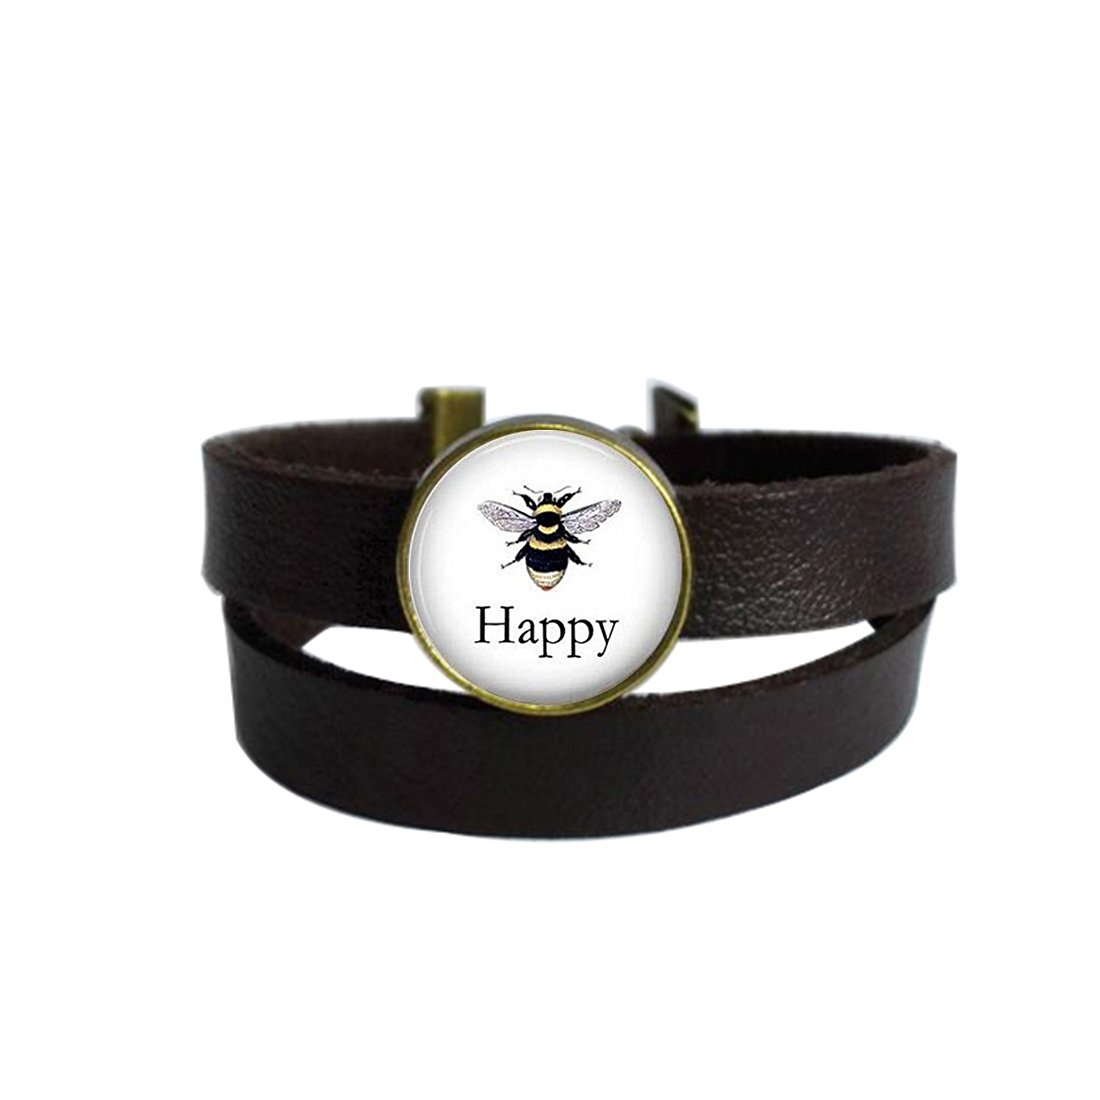 LooPoP Vintage Punk Dark Brown Leather Bracelet Bee Happy Vintage Bee Lithograph Honeybee Belt Wrap Cuff Bangle Adjustable